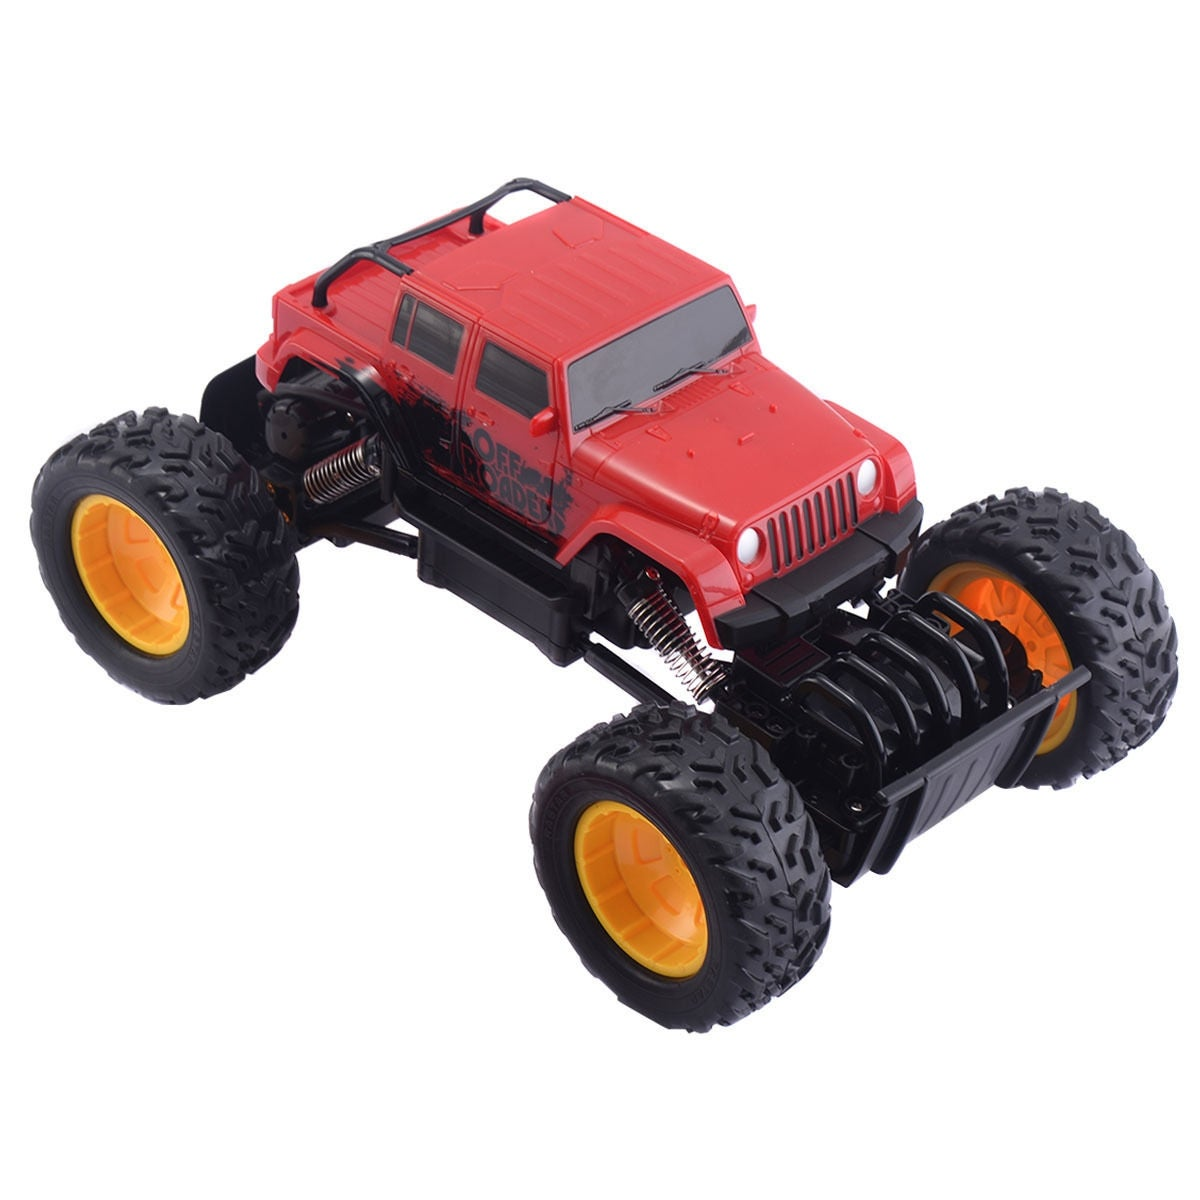 1ae17a641d Shop Costway Monster Truck Remote Control Off-Road Car 4 Wheel Drive - Red  - Free Shipping On Orders Over  45 - Overstock - 17202081